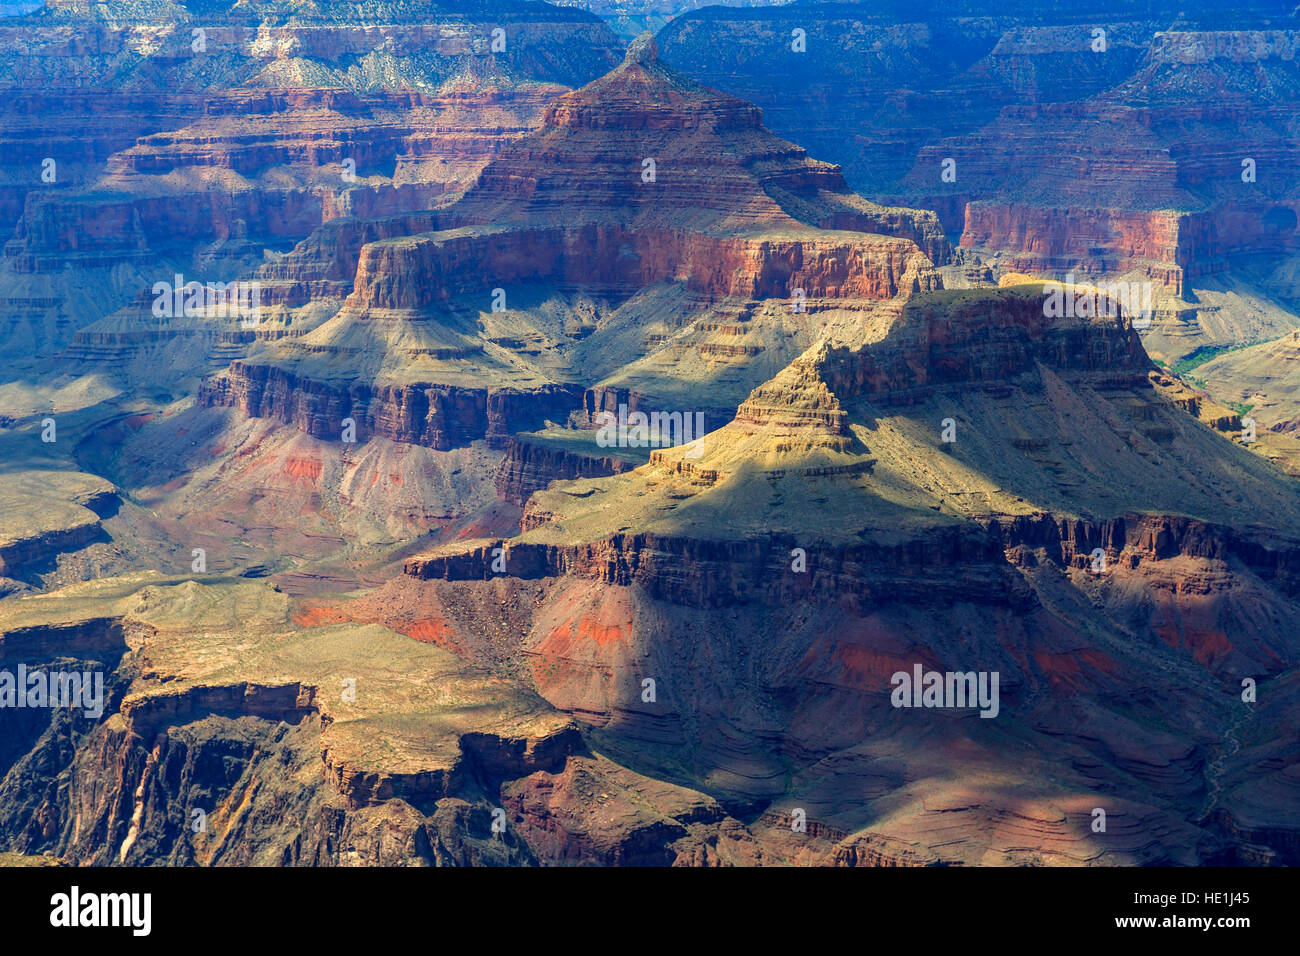 In this view shadows from the clouds move across the rock formations in Grand Canyon National Park, Arizona, USA - Stock Image